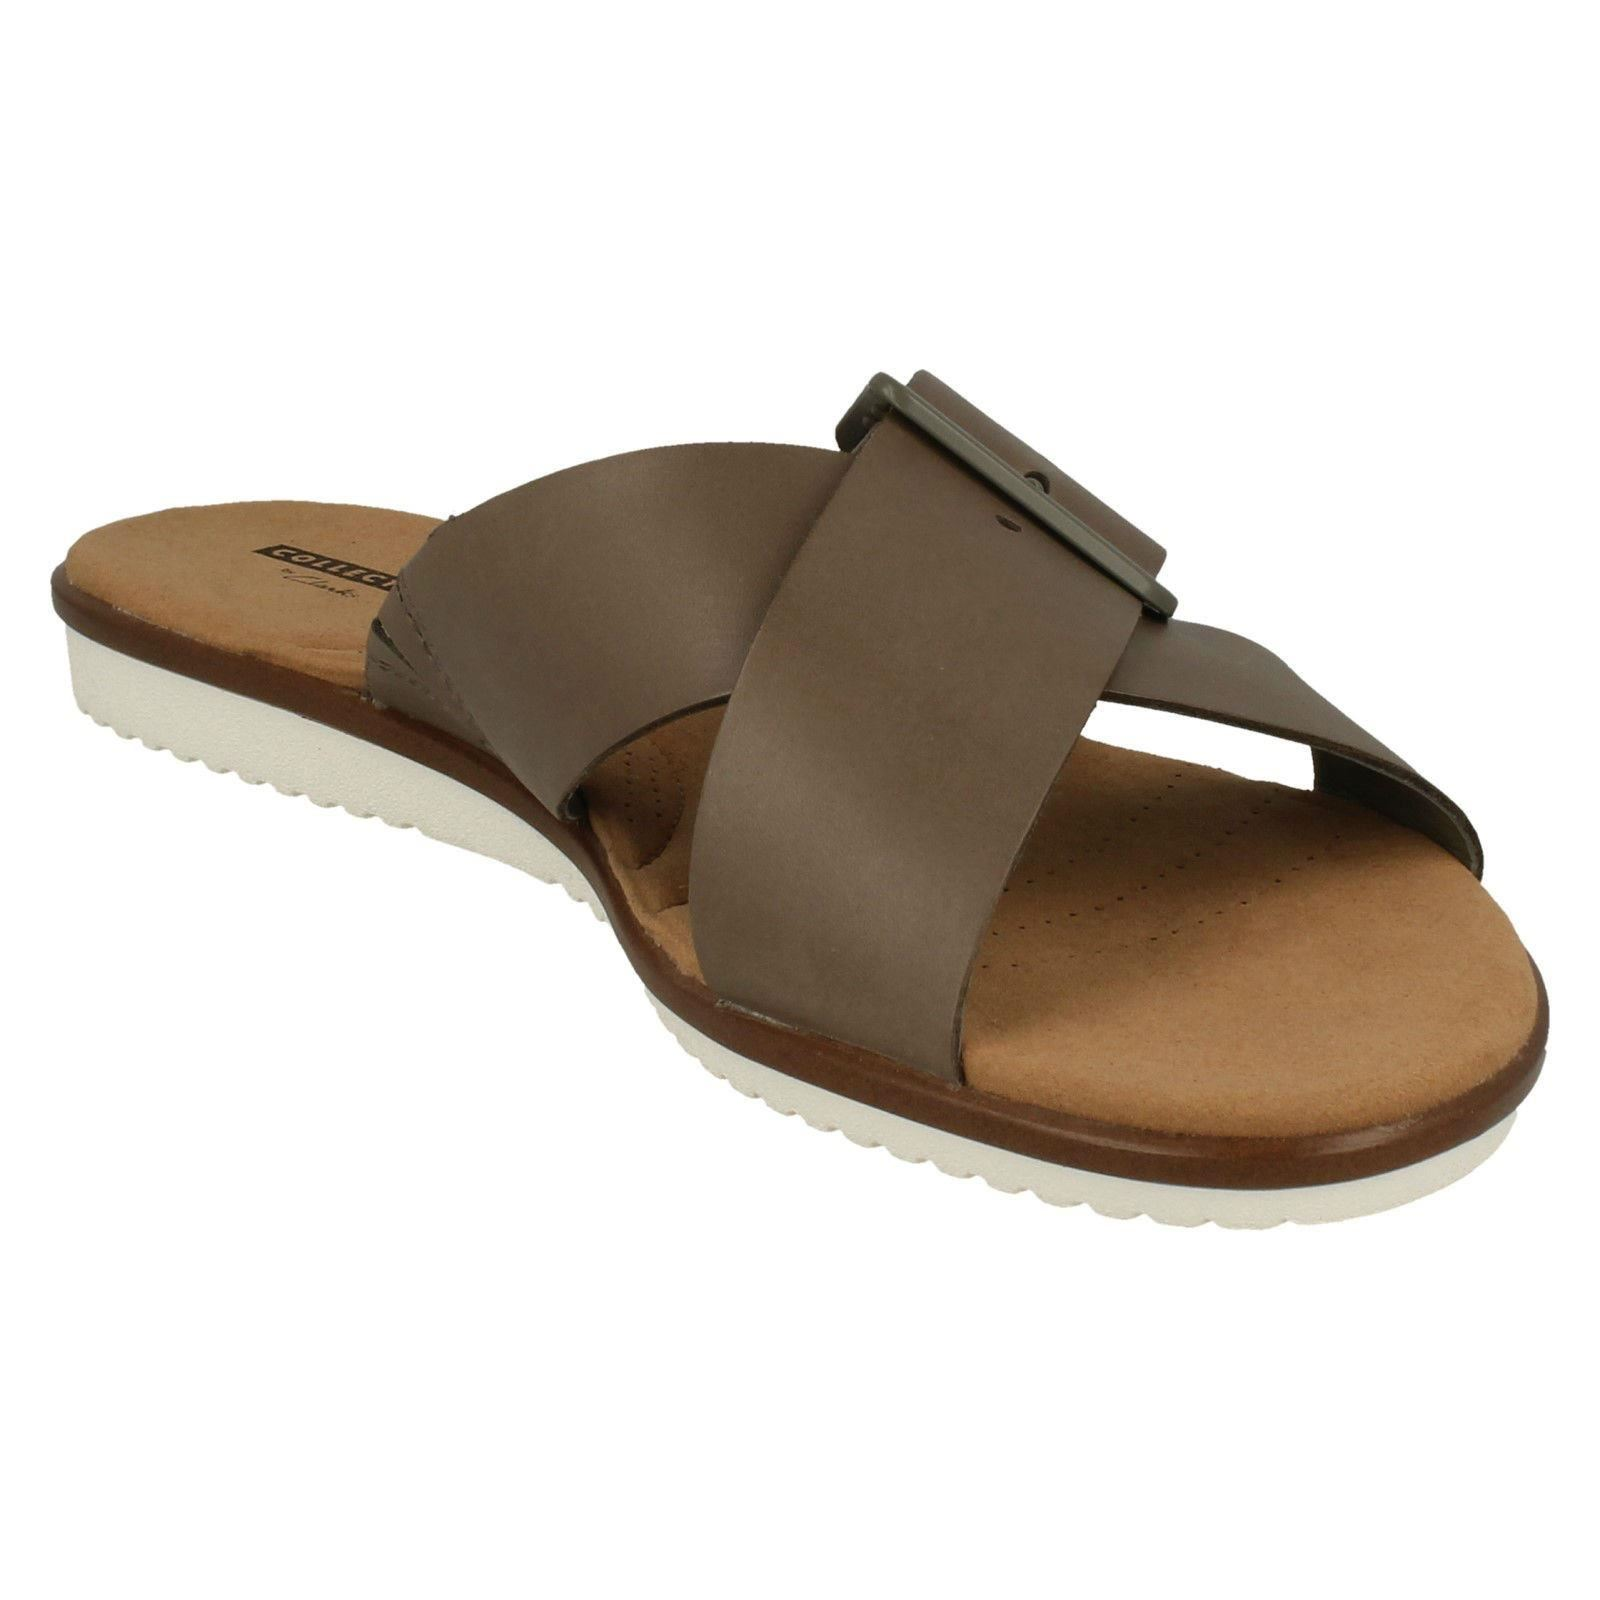 Ladies Clarks Slip Slip Slip On Sandals - Kele Heather 215a9f